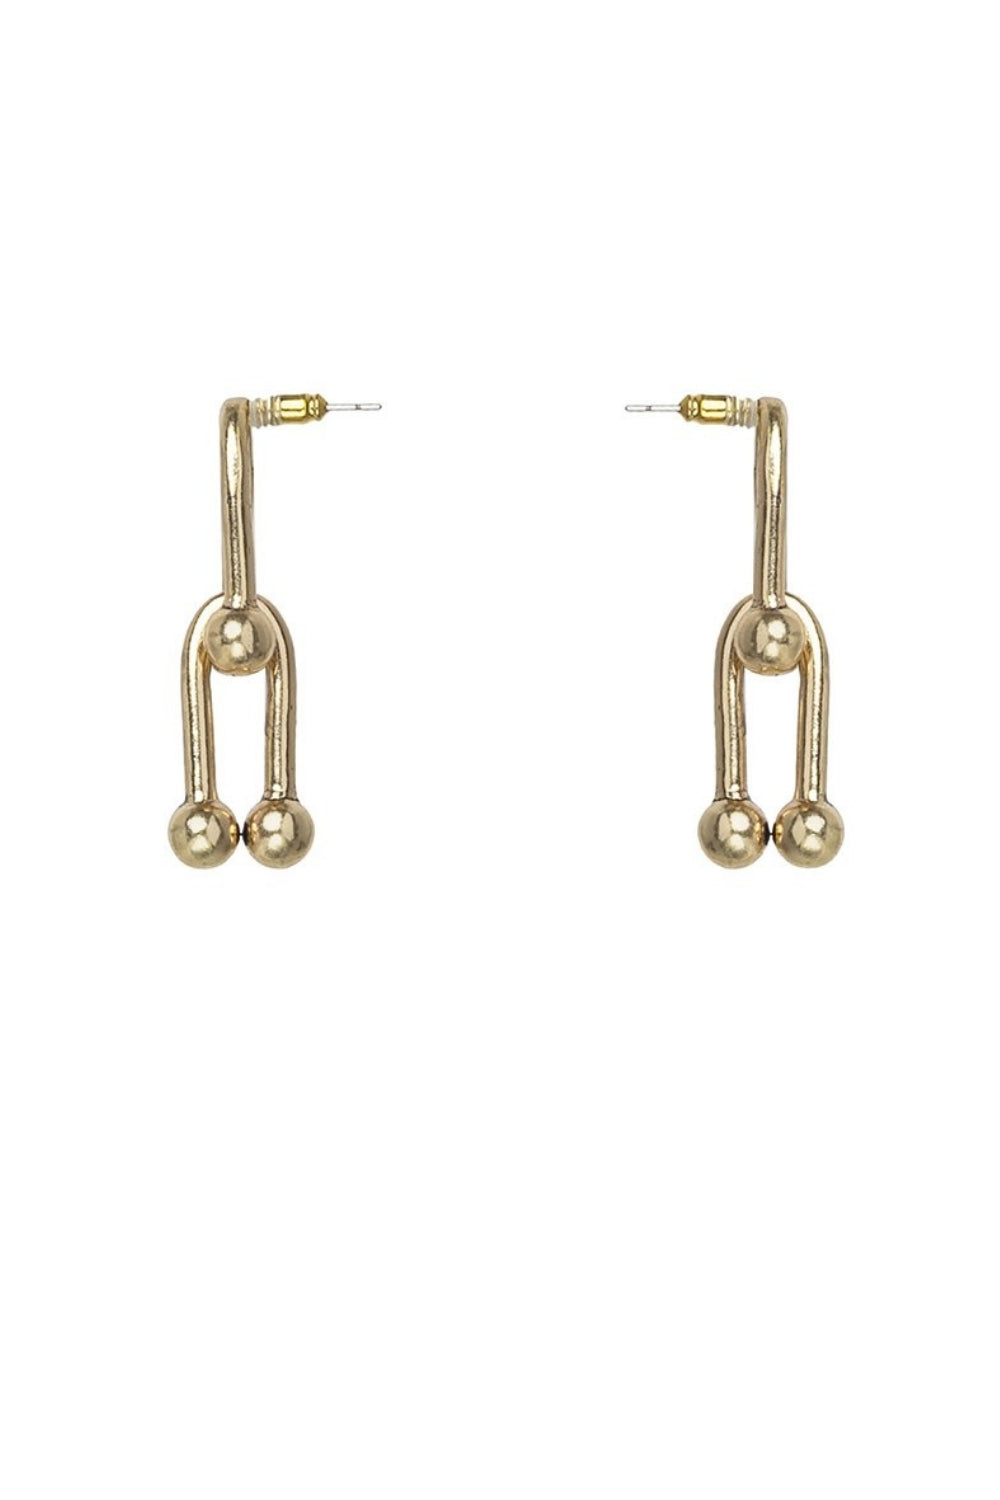 Kitte / Bond Earring / Gold